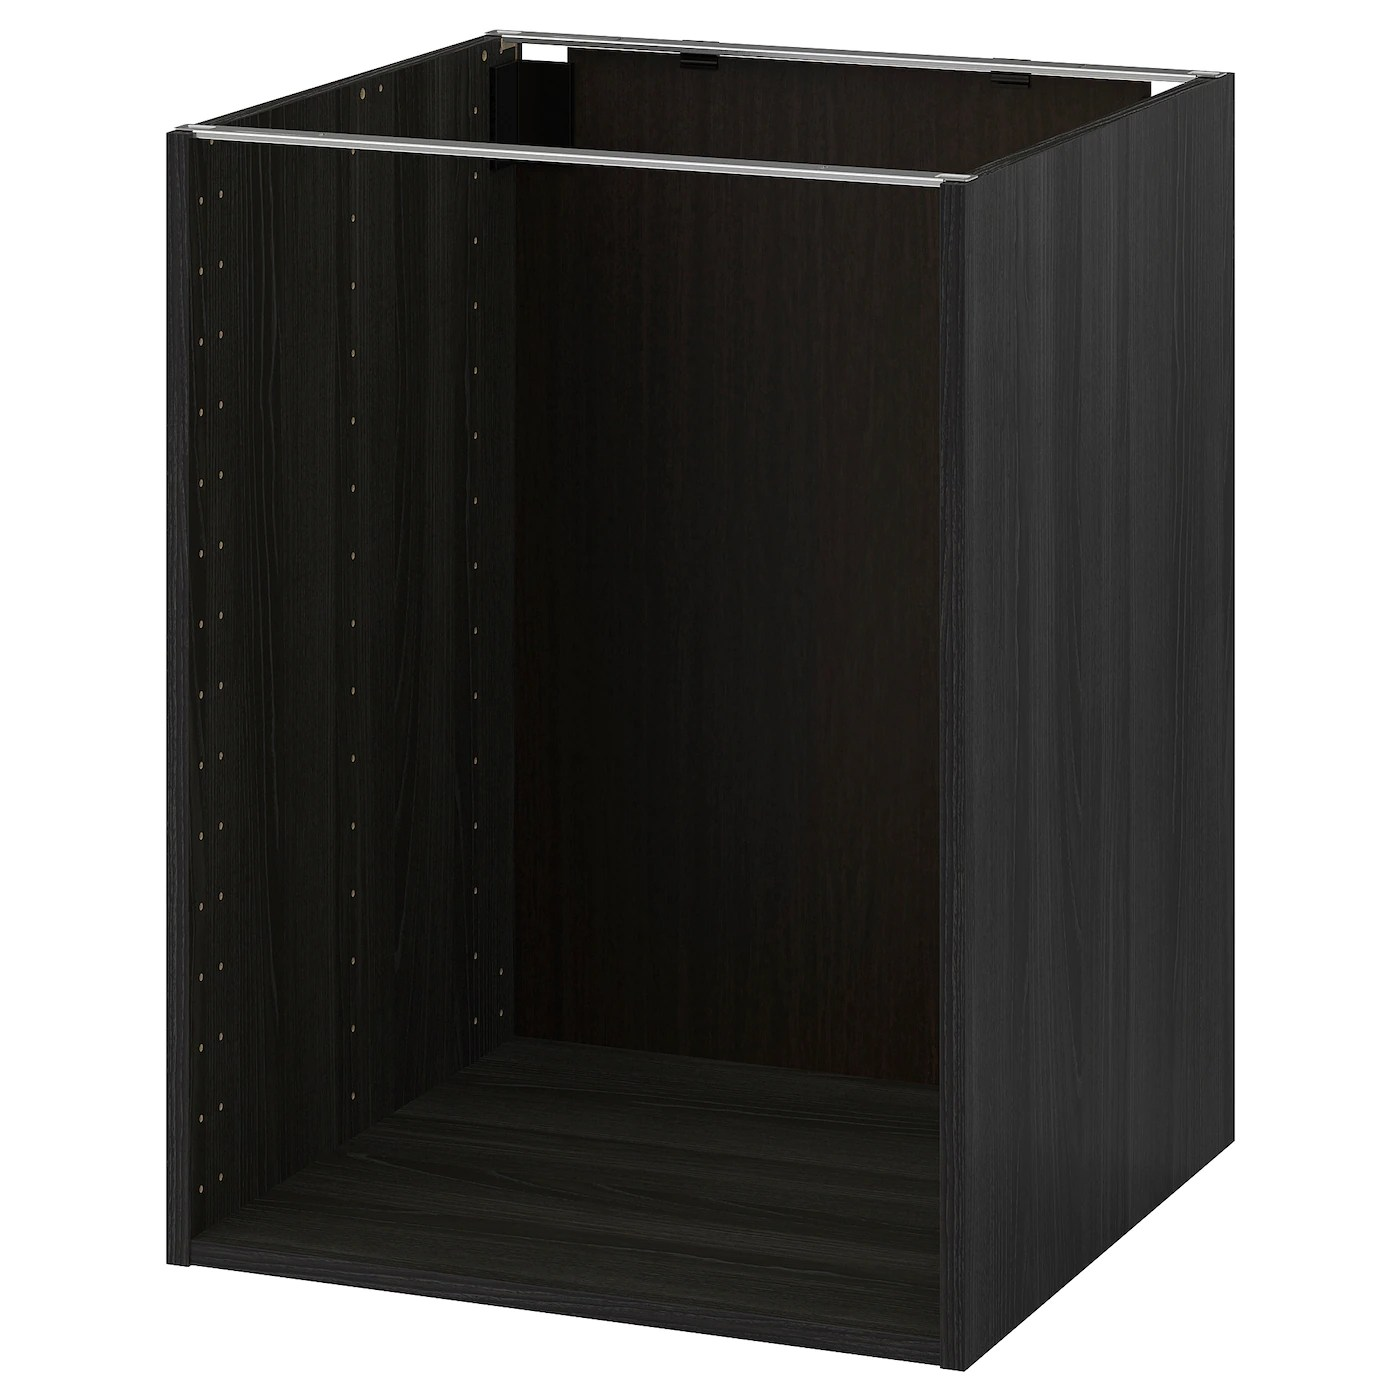 Metod Ikea Metod Base Cabinet Frame Wood Effect Black